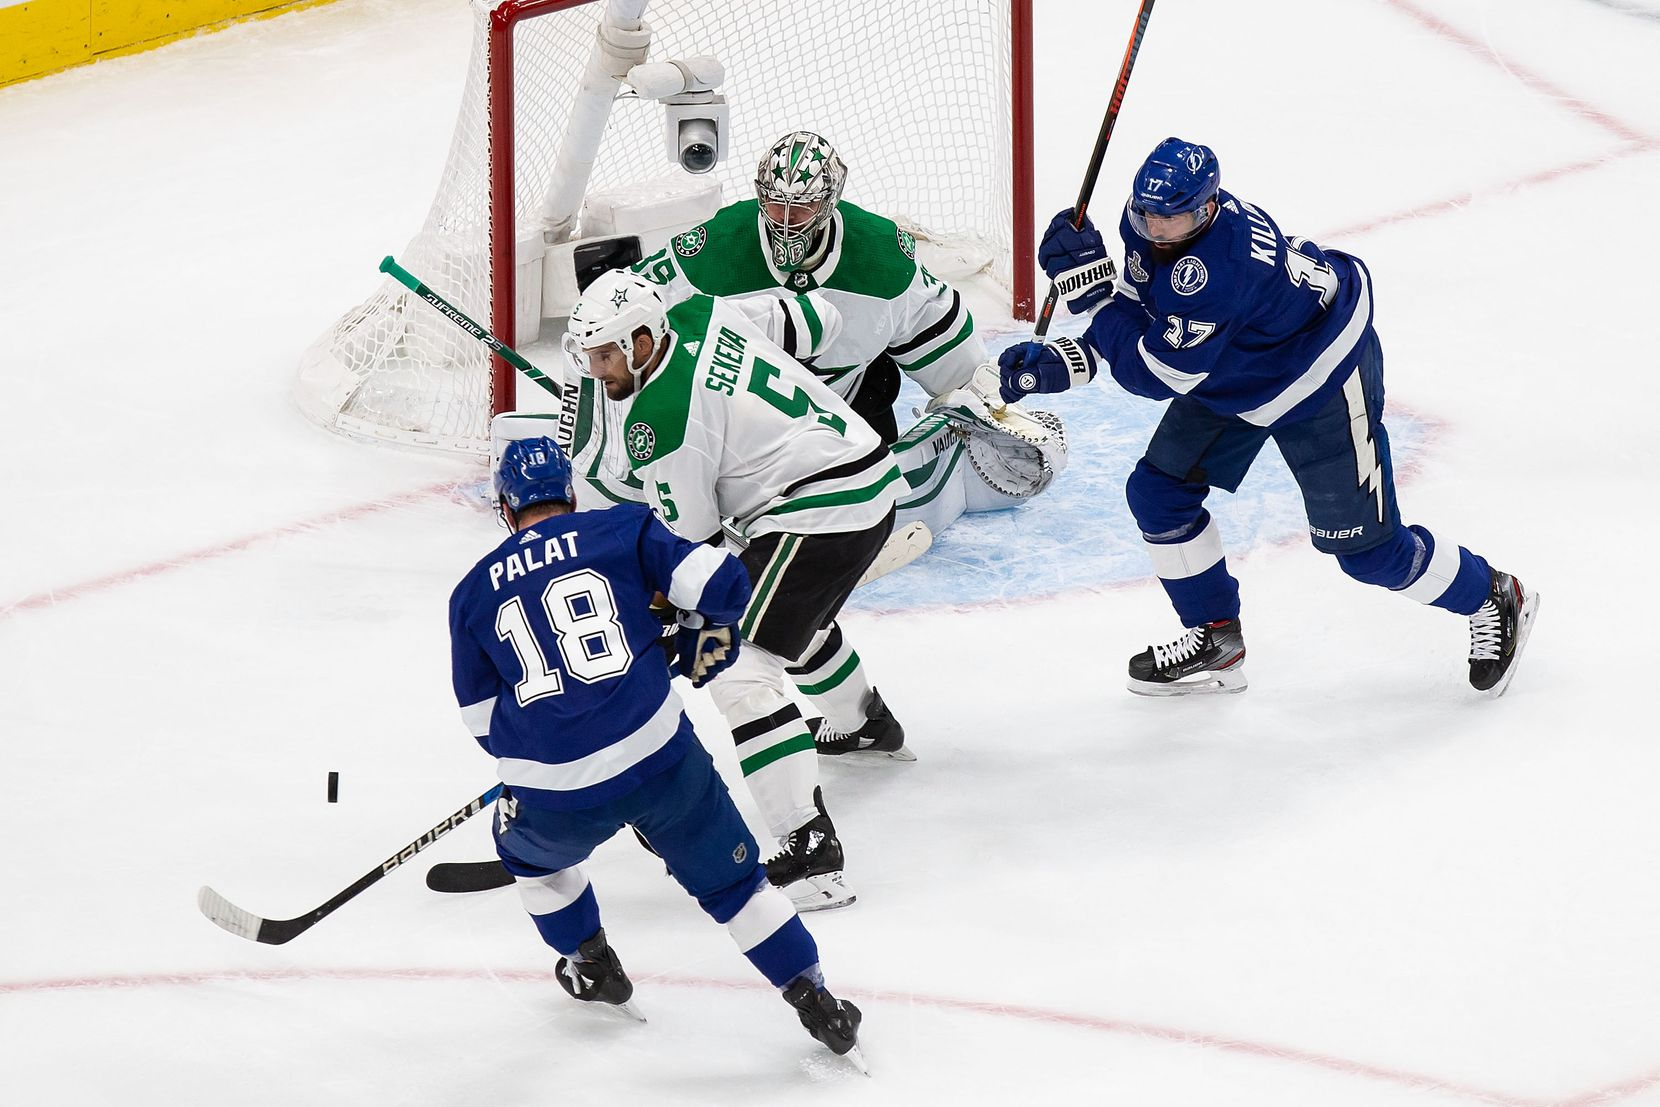 Goaltender Anton Khudobin (35) of the Dallas Stars defends the net against Ondrej Palat (18) of the Tampa Bay Lightning during Game Two of the Stanley Cup Final at Rogers Place in Edmonton, Alberta, Canada on Monday, September 21, 2020. (Codie McLachlan/Special Contributor)